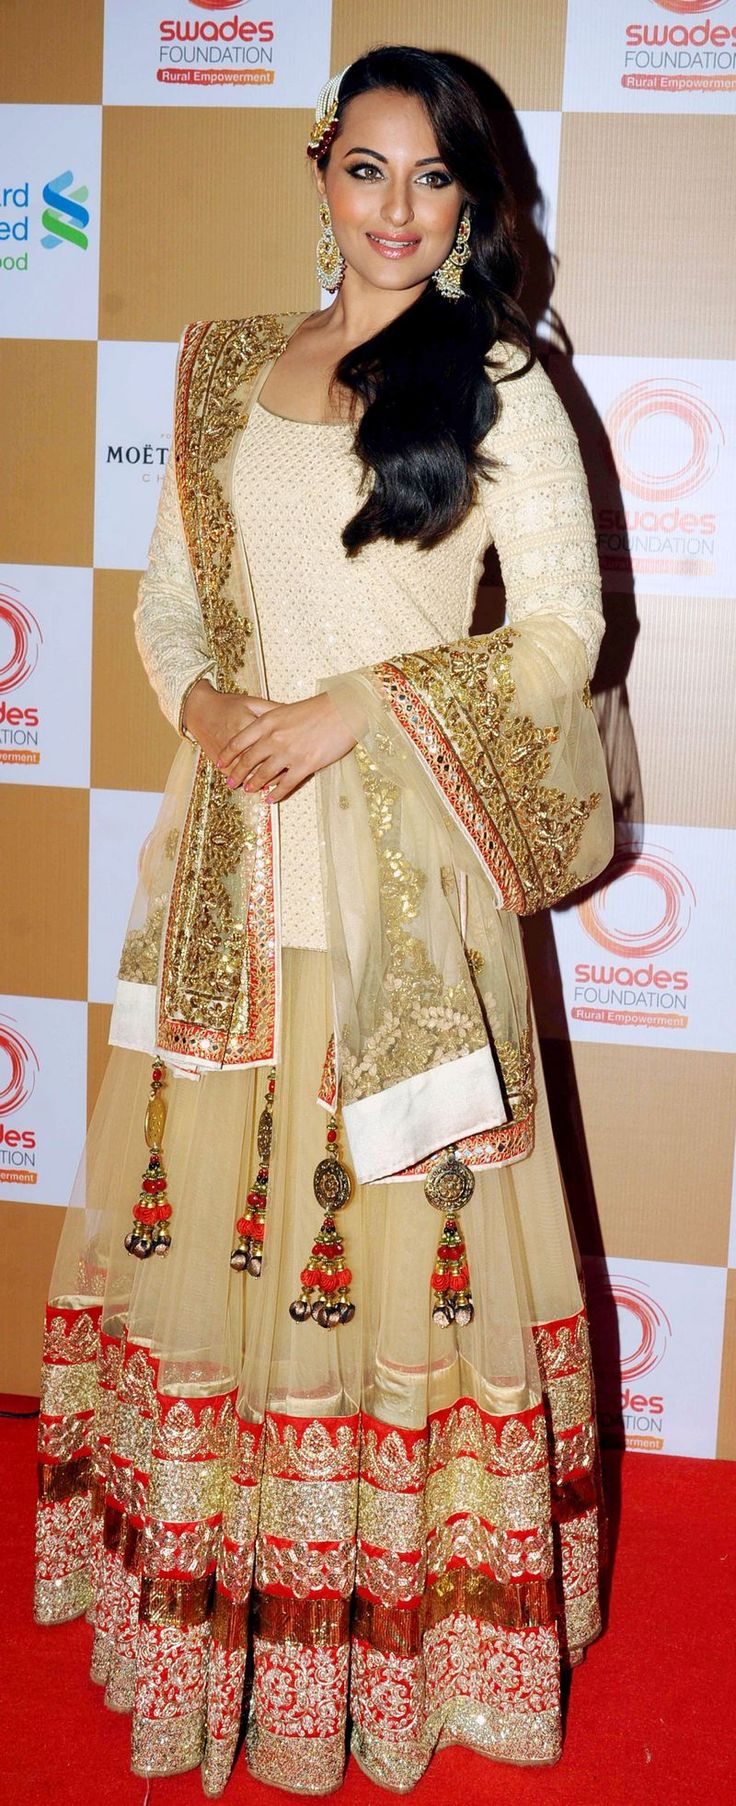 Sonakshi Sinha wore an ornate ghagra with a longer-than-usual choli at a fund raising event hosted by Swades Foundation.